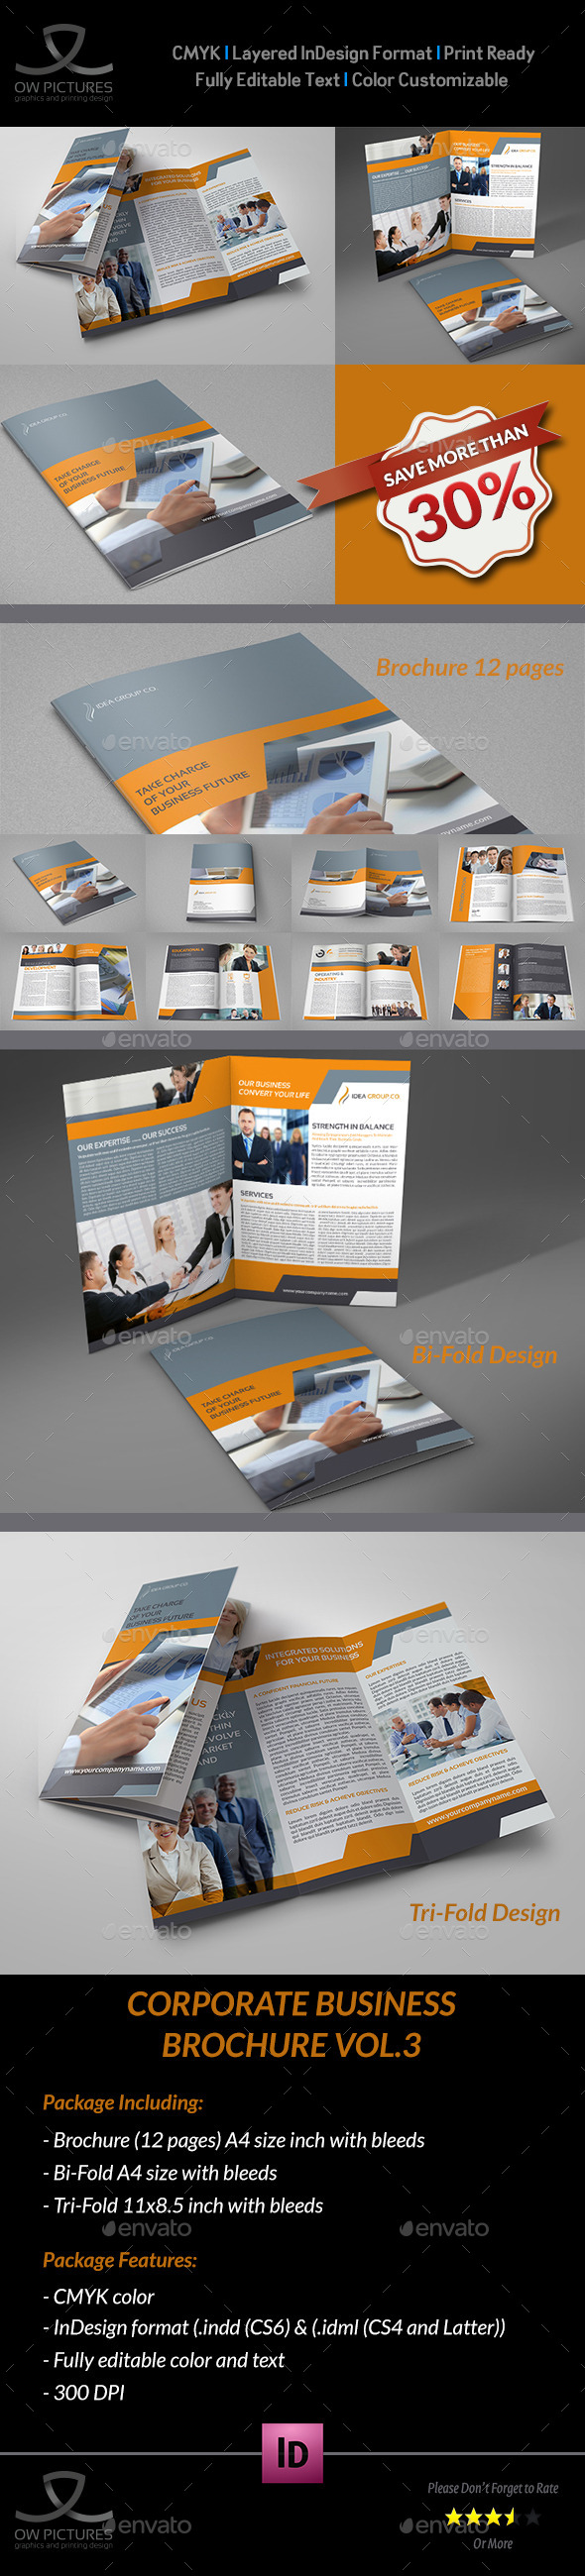 Company Brochure Bundle Vol.3 - Corporate Brochures